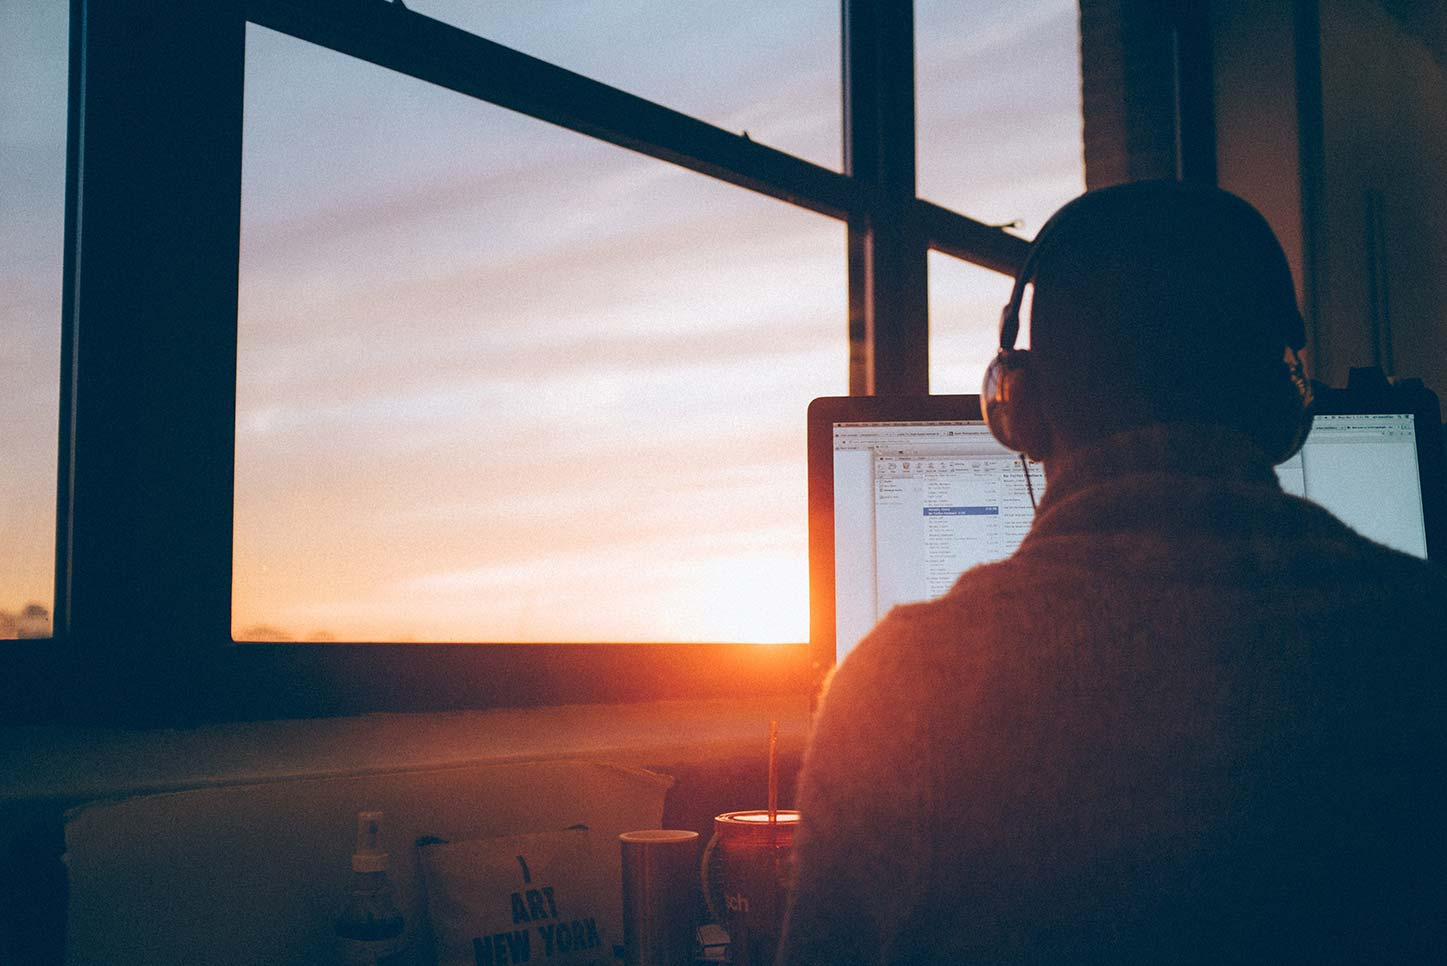 man working in front of window at sunrise